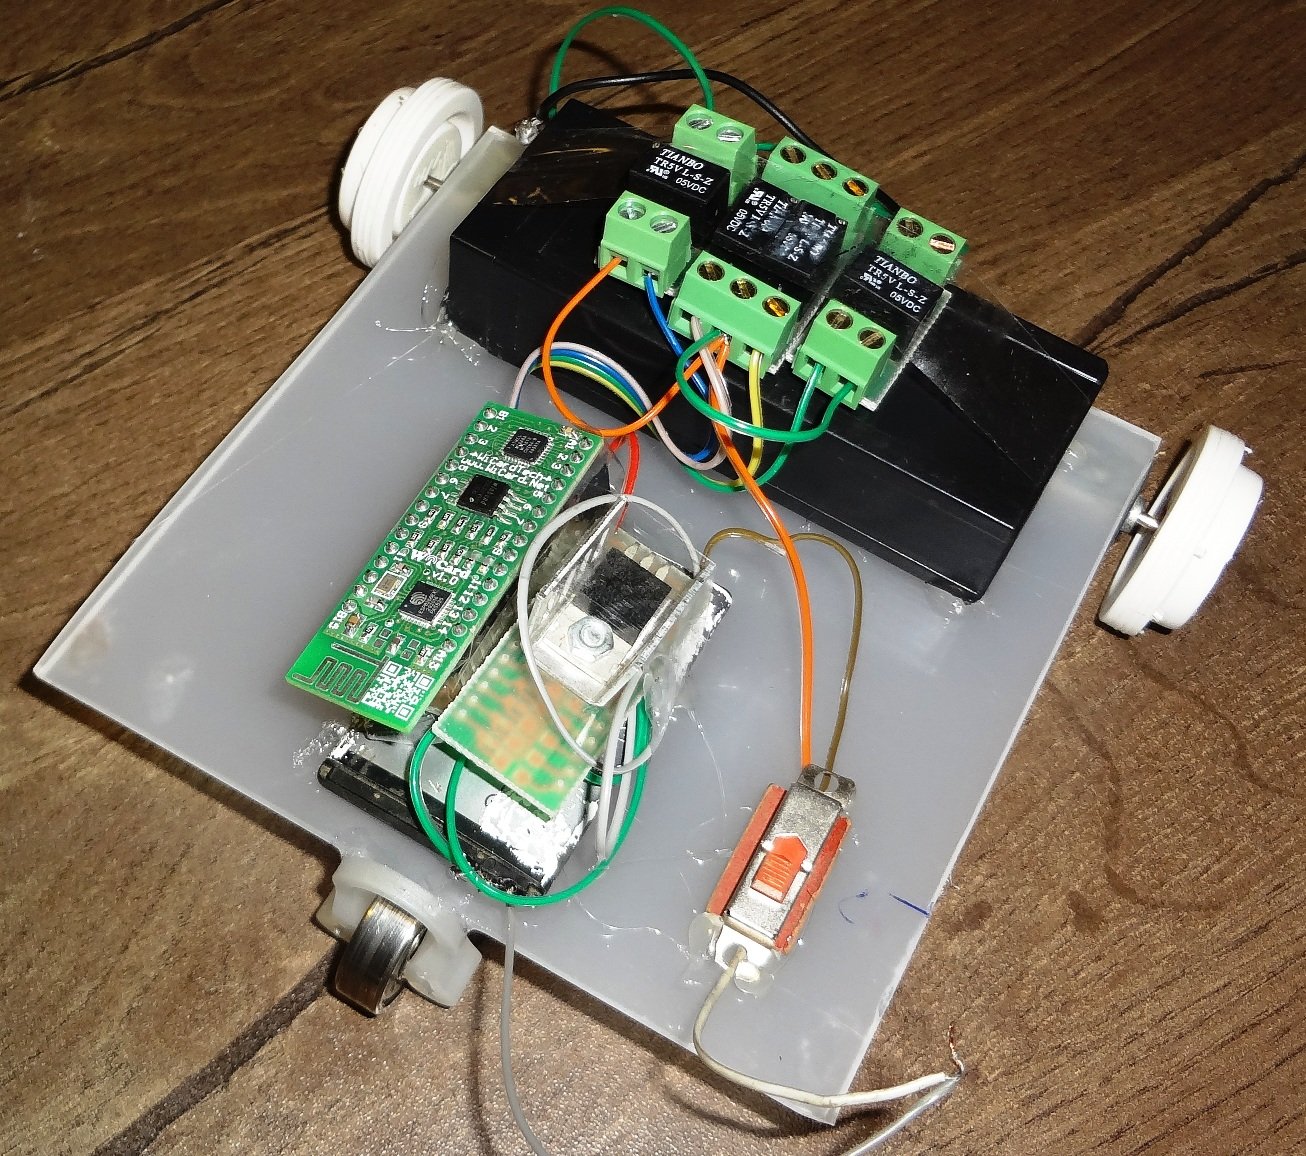 WiFi controllable robot 1 - WiCard